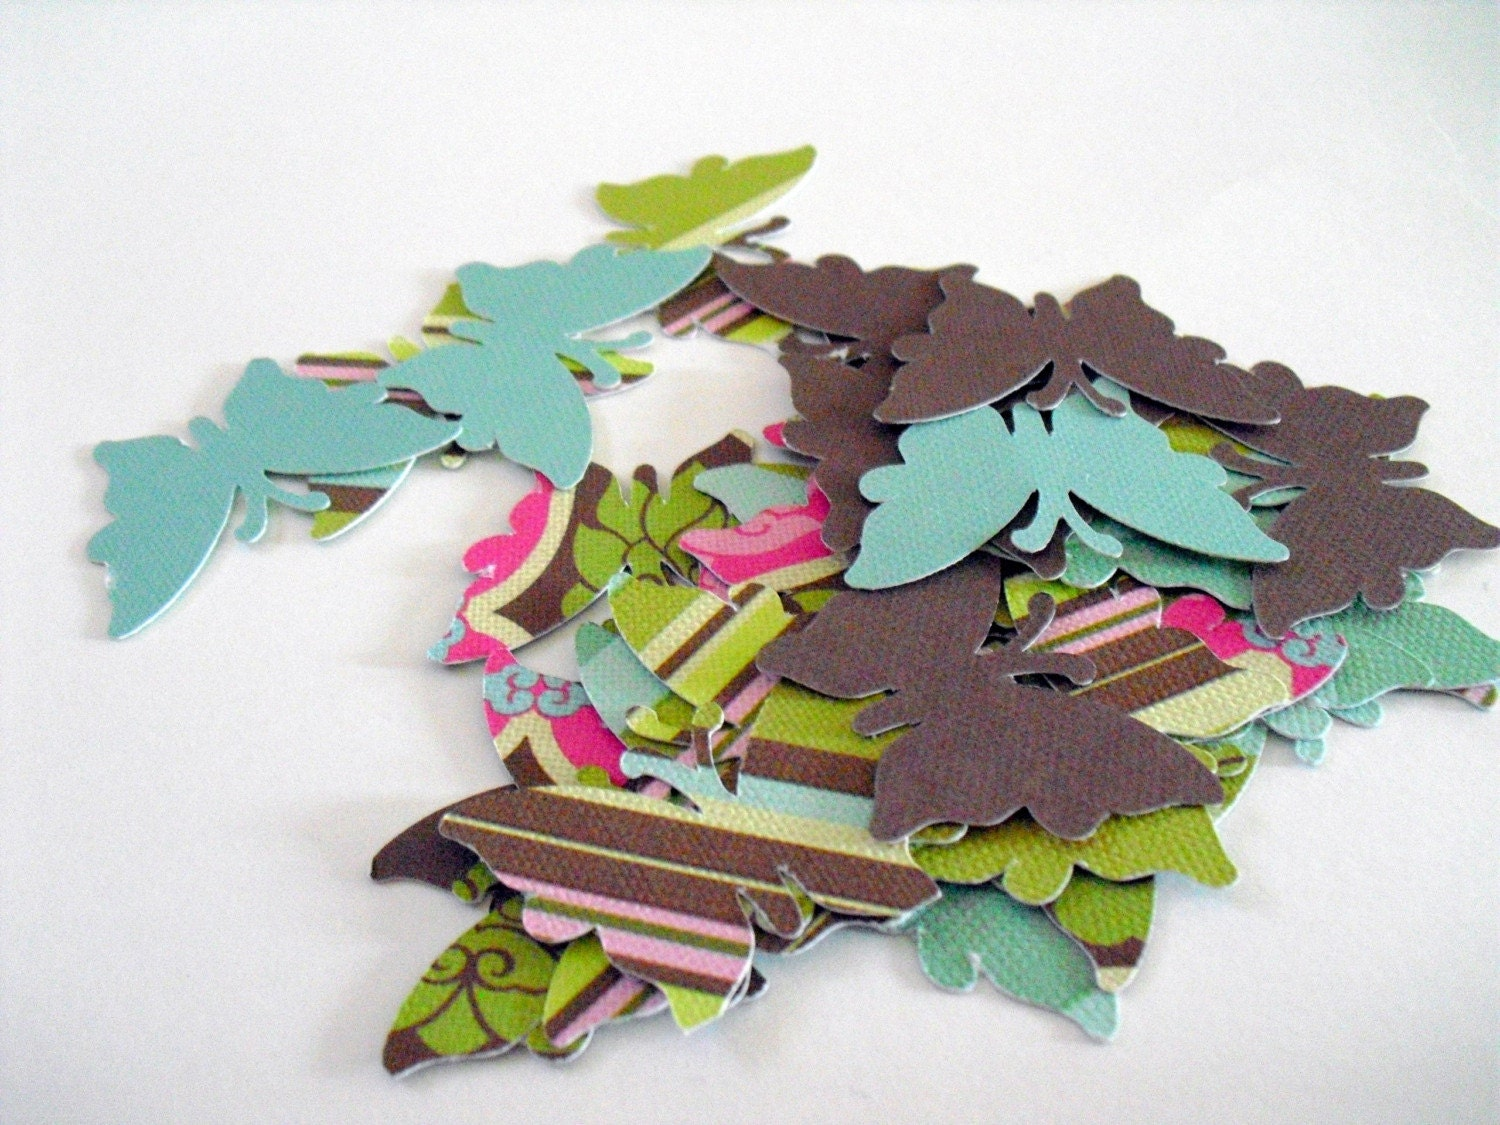 28 Butterfly Die Cut by GULTEN on Etsy